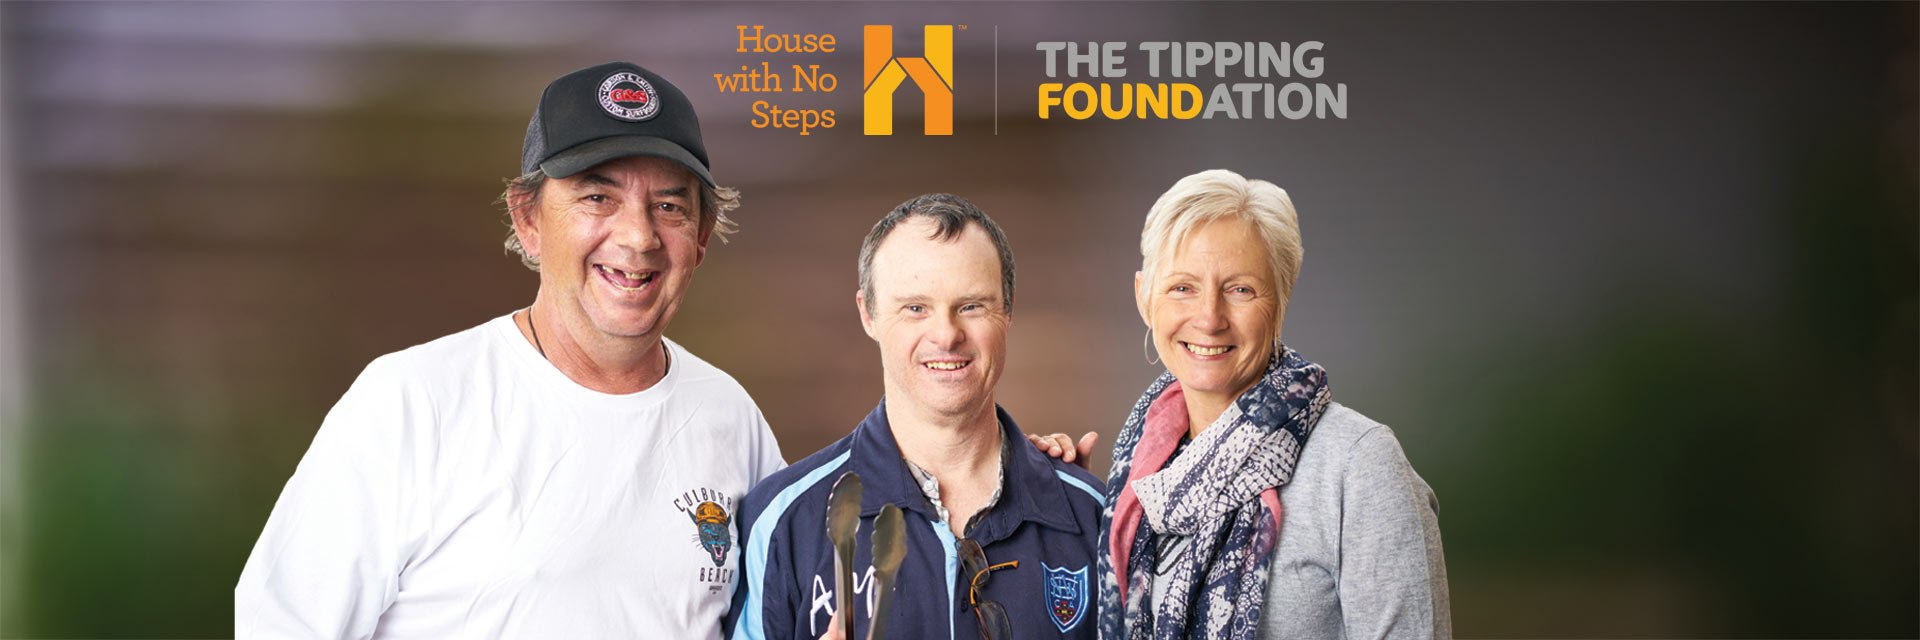 House with No Steps and Tipping unite